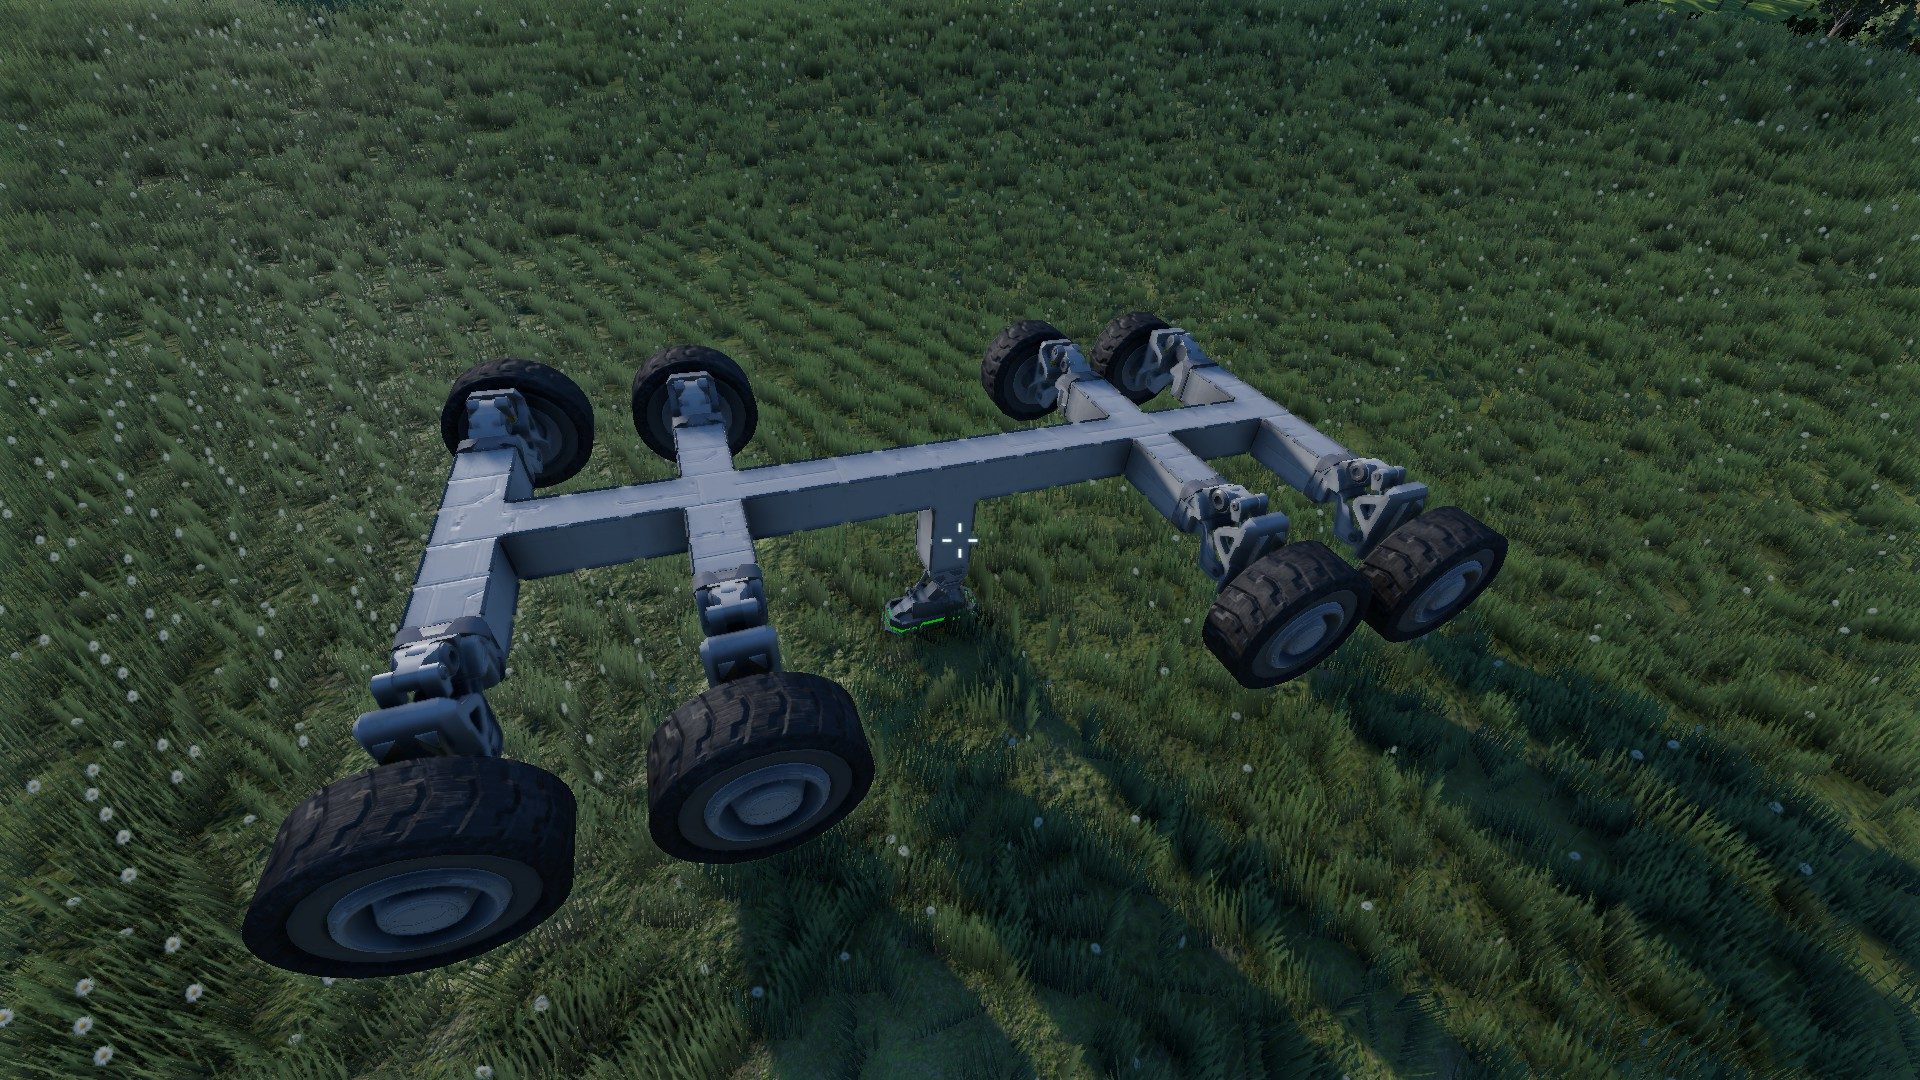 You Could Have Them Evenly Ed Along The Length Of Rover But I Find That If Want To Do Then 6 Wheels Is A Better Choice